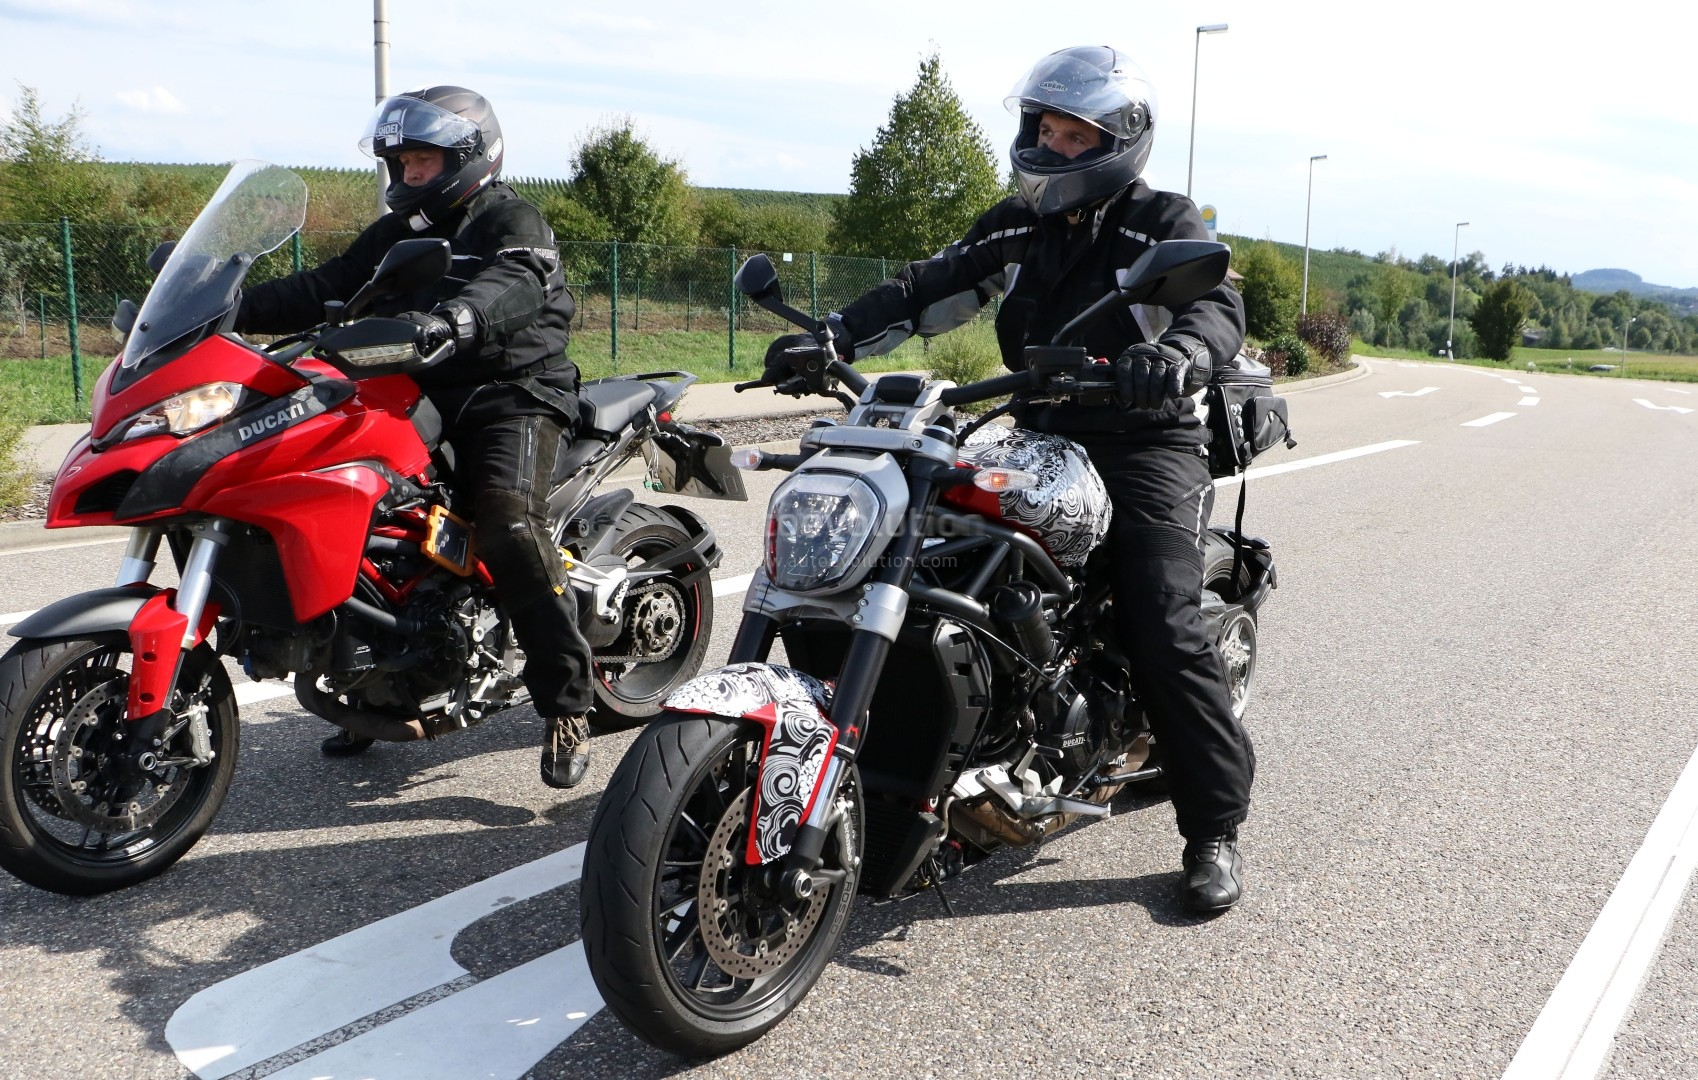 Spyshots Of The Belt Driven Ducati Diavel Show A Much